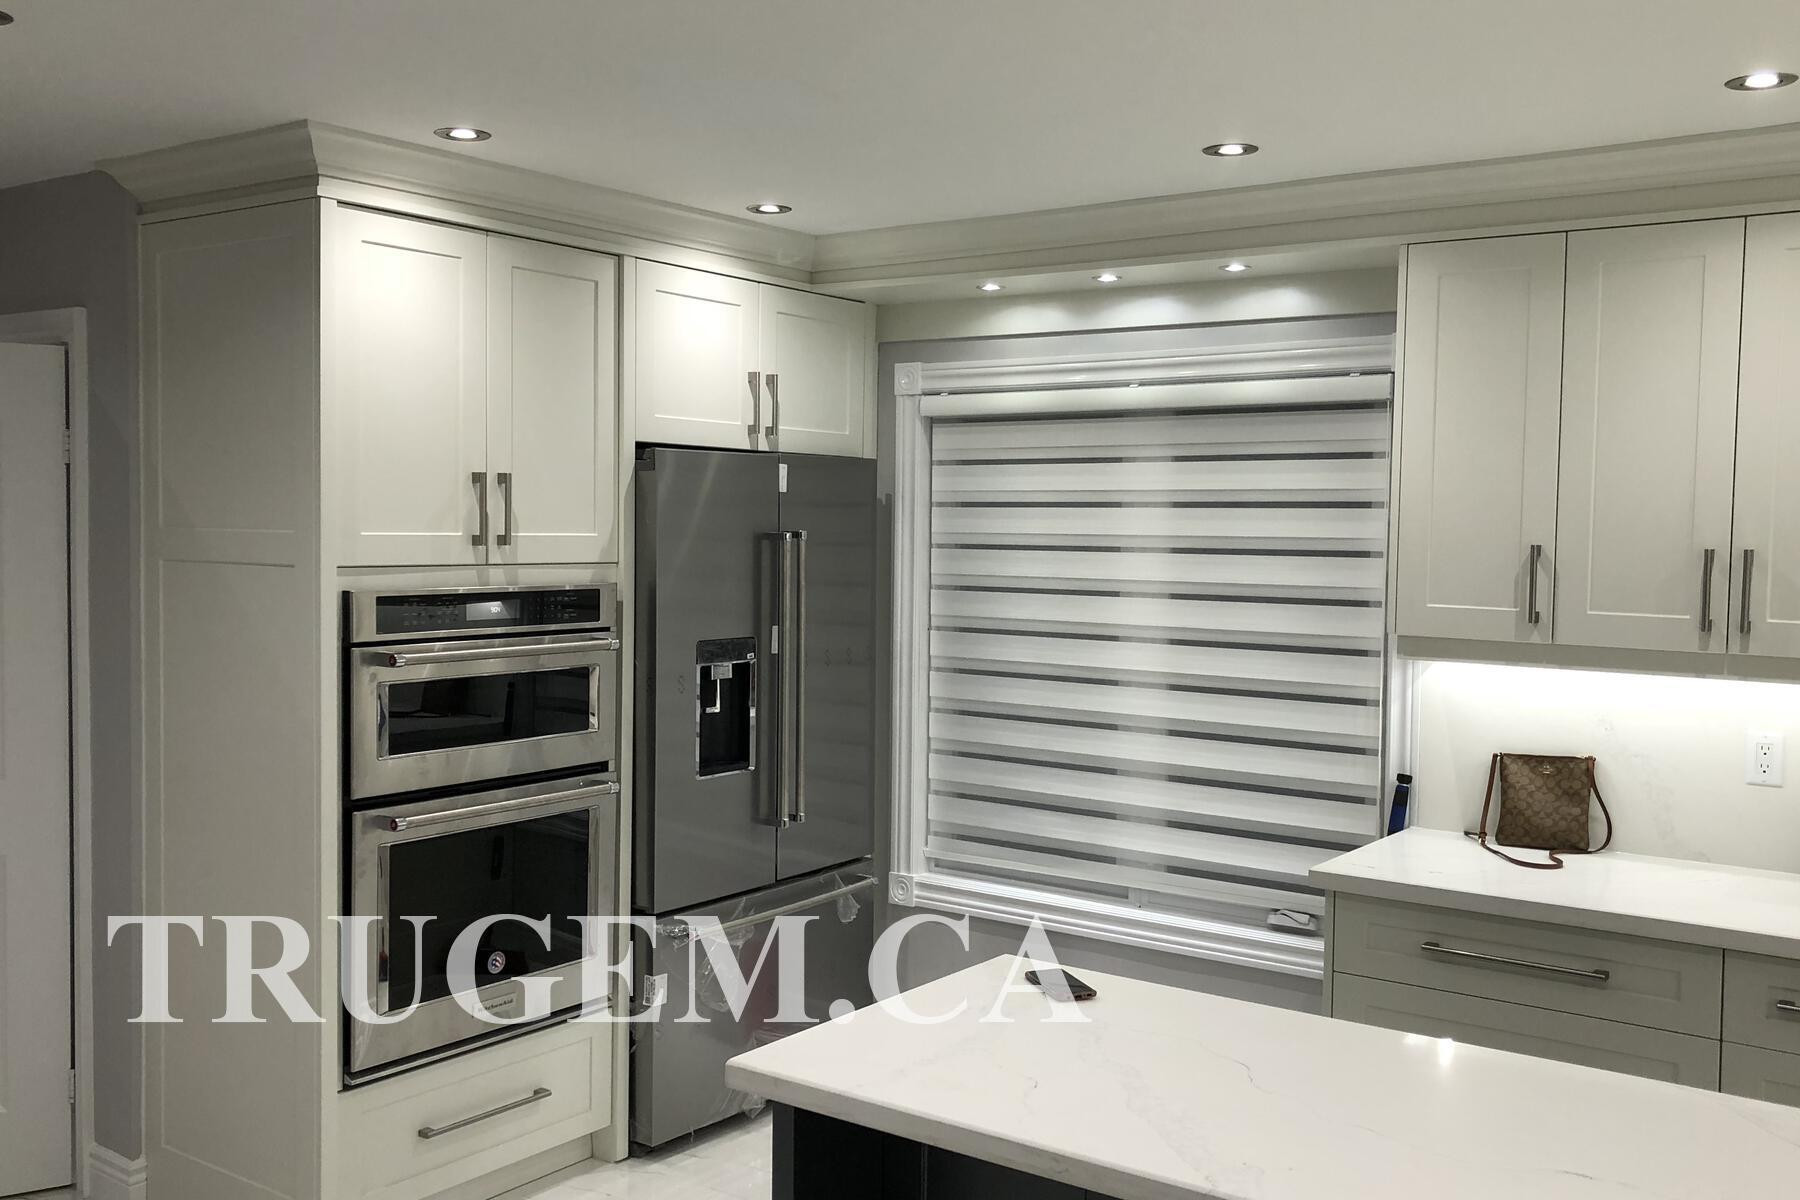 lightining style for classic kitchen